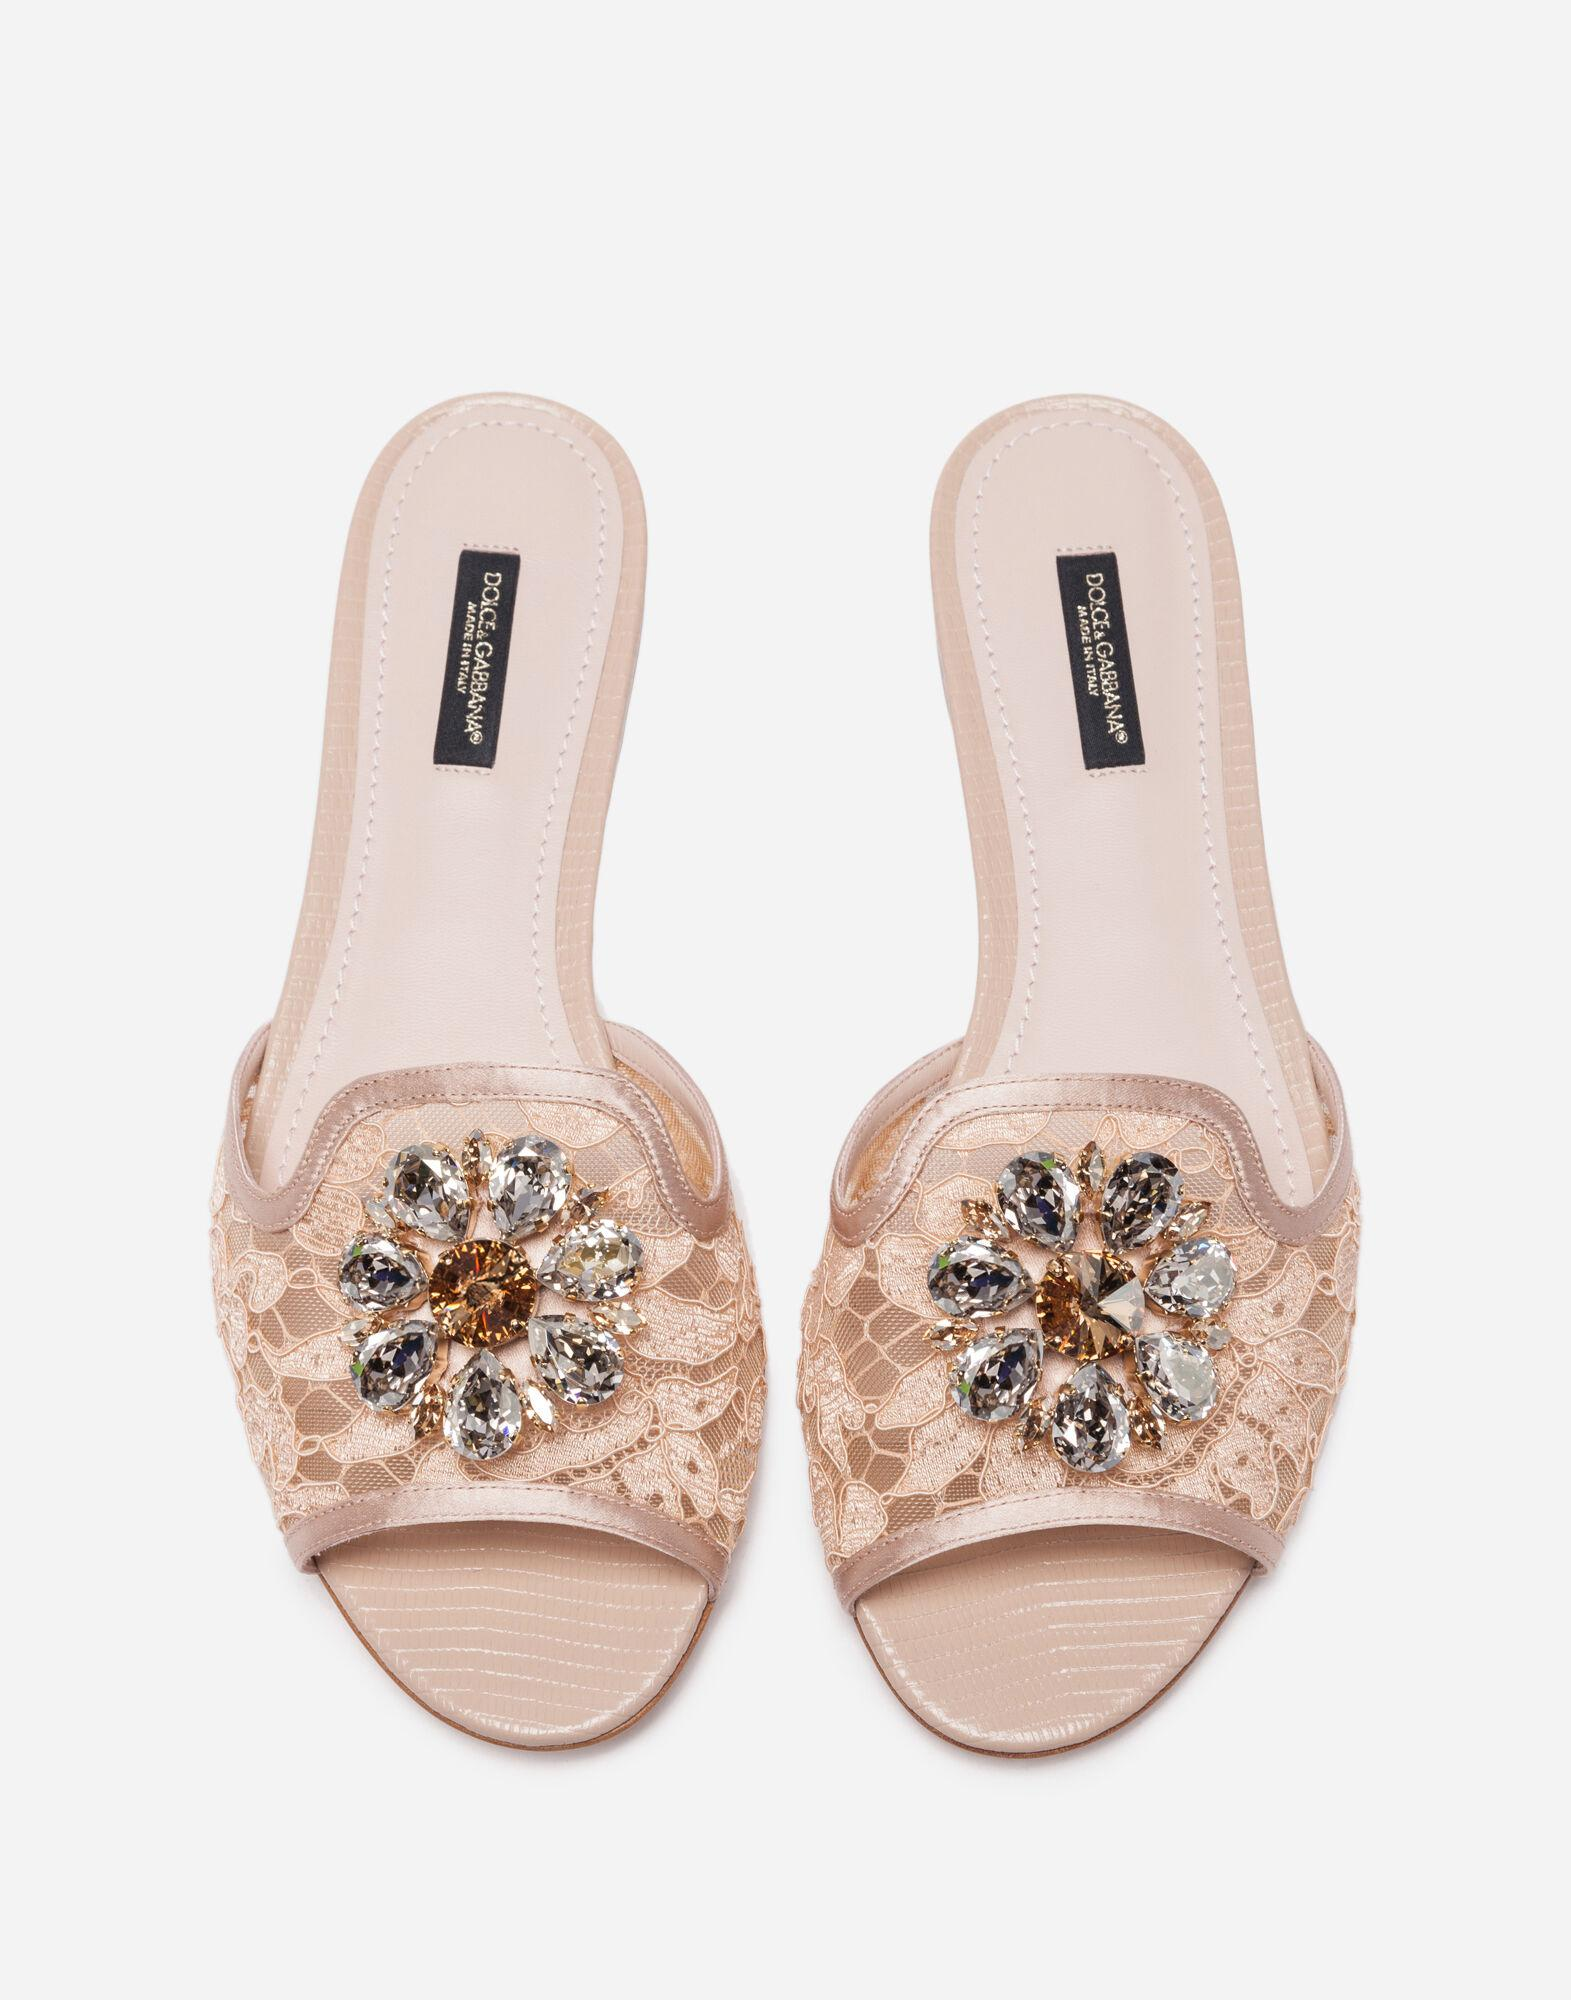 Slippers in lace with crystals 2